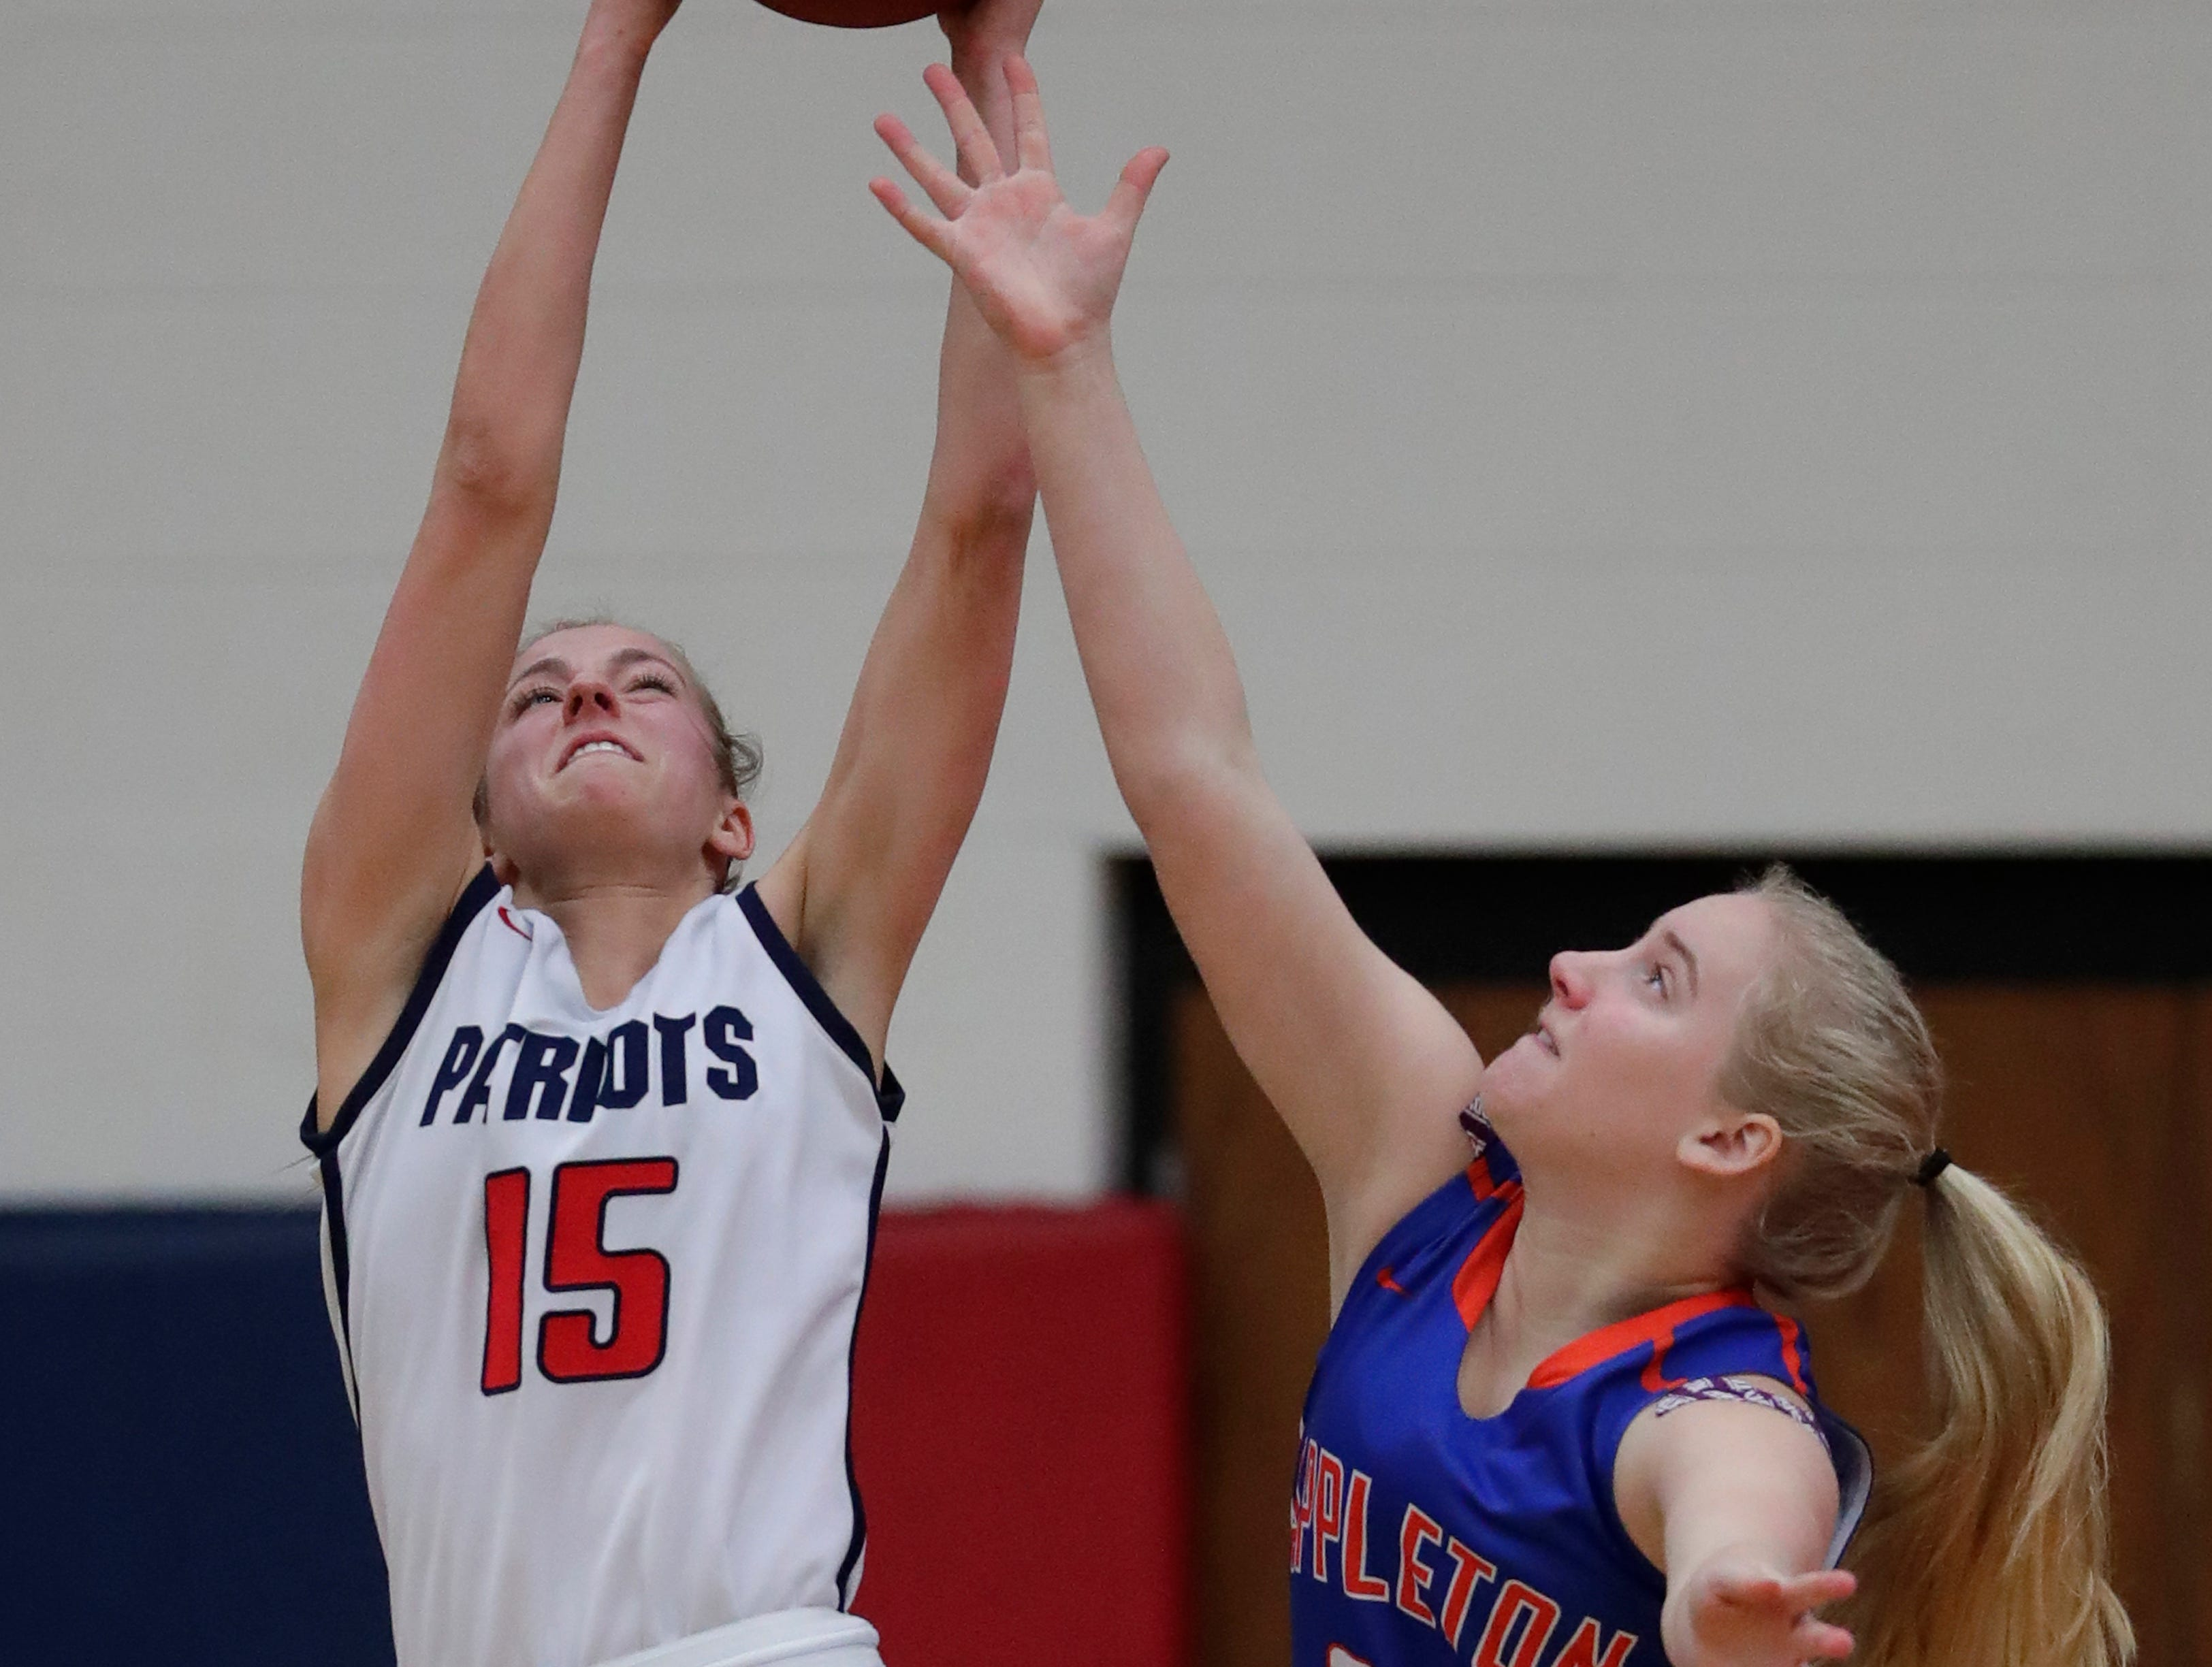 Appleton East High School's Meghan Borowski (15) pulls down a rebound against Appleton West High School's McKayla Knoebel (33) during their girls basketball game Friday, January 11, 2019, at Appleton East High School in Appleton, Wis. 